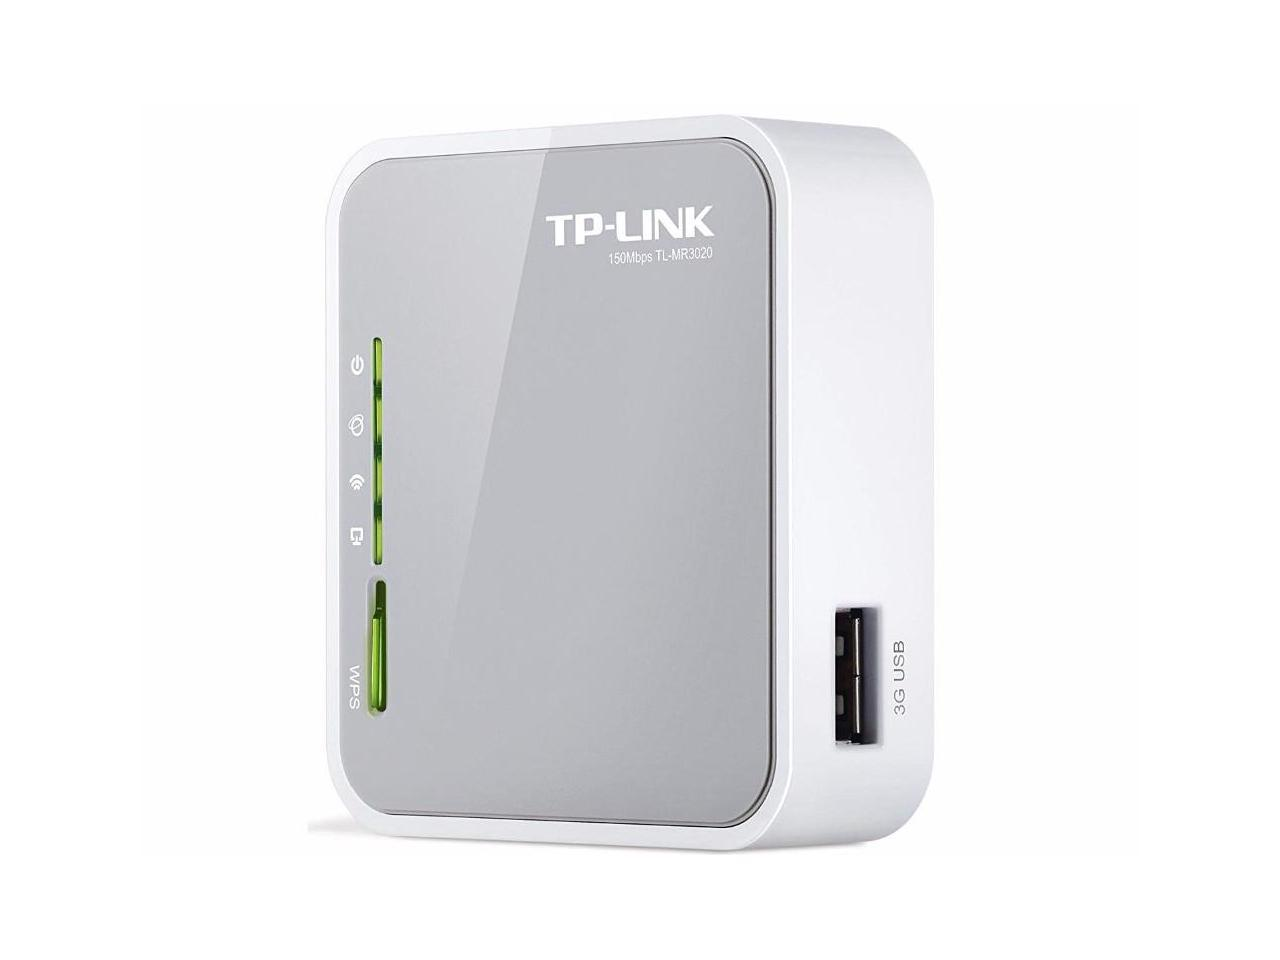 TP-LINK TL-MR3020 150Mbps Portable 3G/4G wireless wifi repeater router with USB powered English firmware - Newegg.com